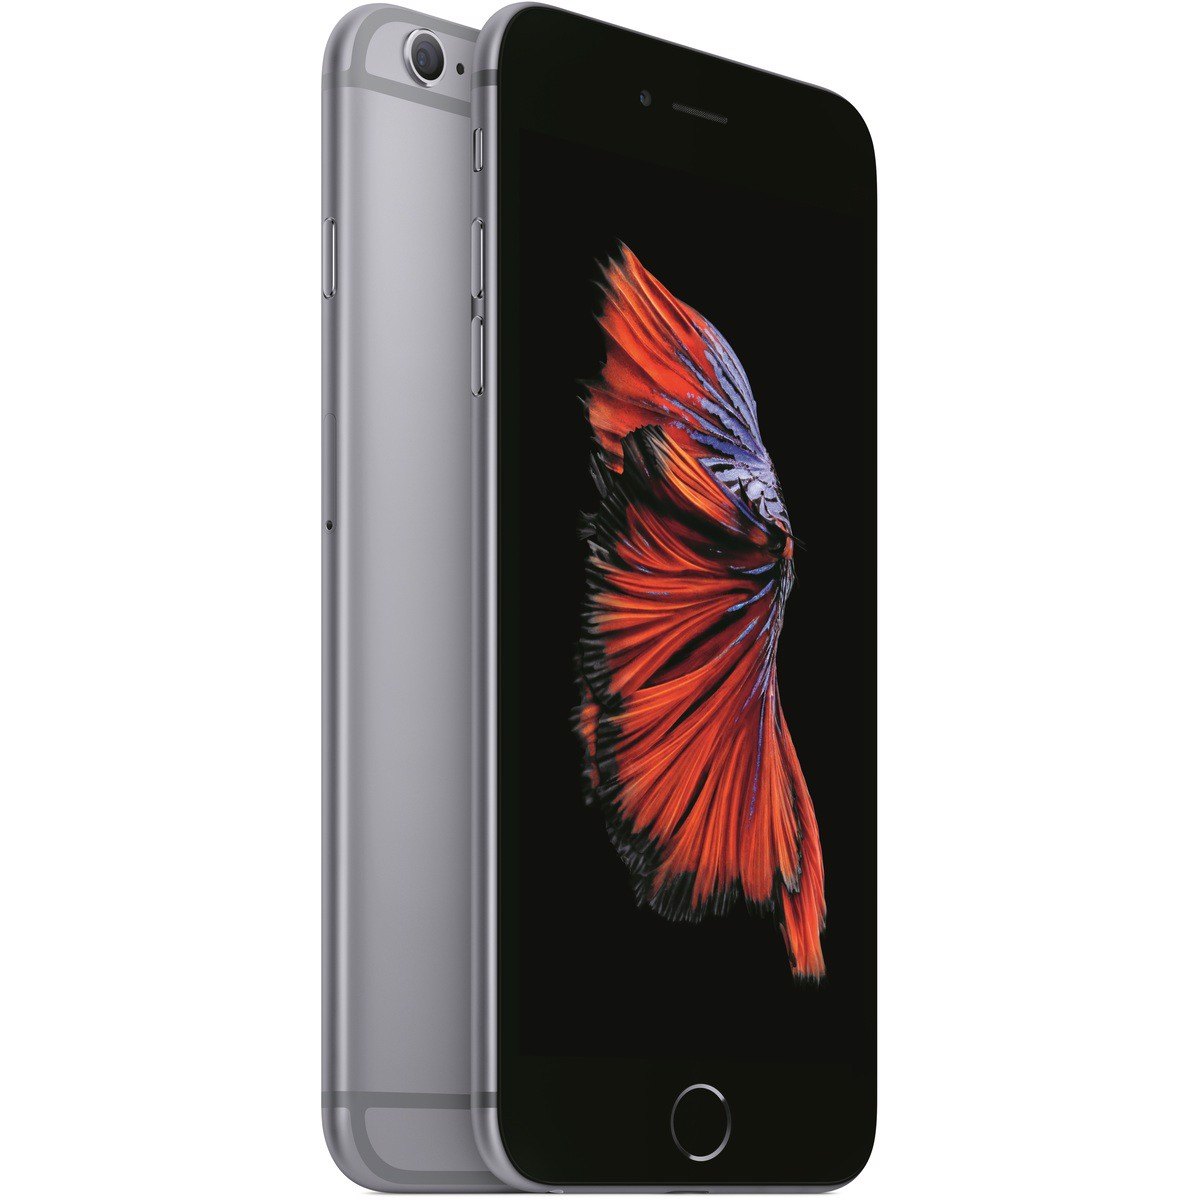 iPhone 6s 16GB GRAY Zin All 97% sườn cấn